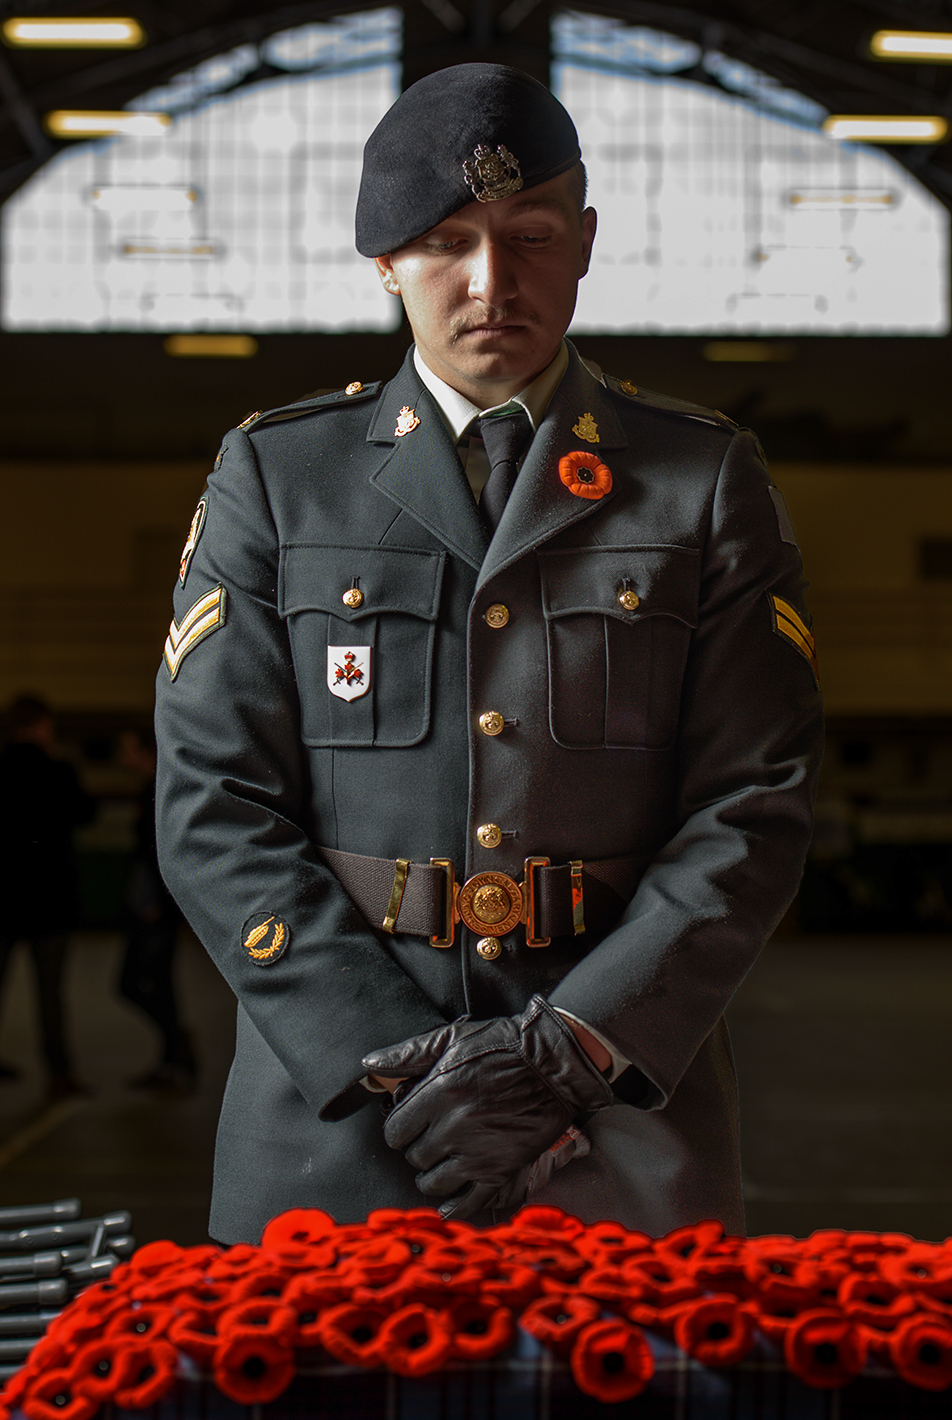 Paying Tribute: Cpl. Cyrus Thunderchild, a member of the Canadian armed forces poses for a portrait at Mewata Armoury in Calgary on Wednesday, Nov. 11, 2015. Thunderchild joined the army when he was 16 and still going to high school. One day he plans to serve overseas. (Photo by Kenneth Appleby/The Press)